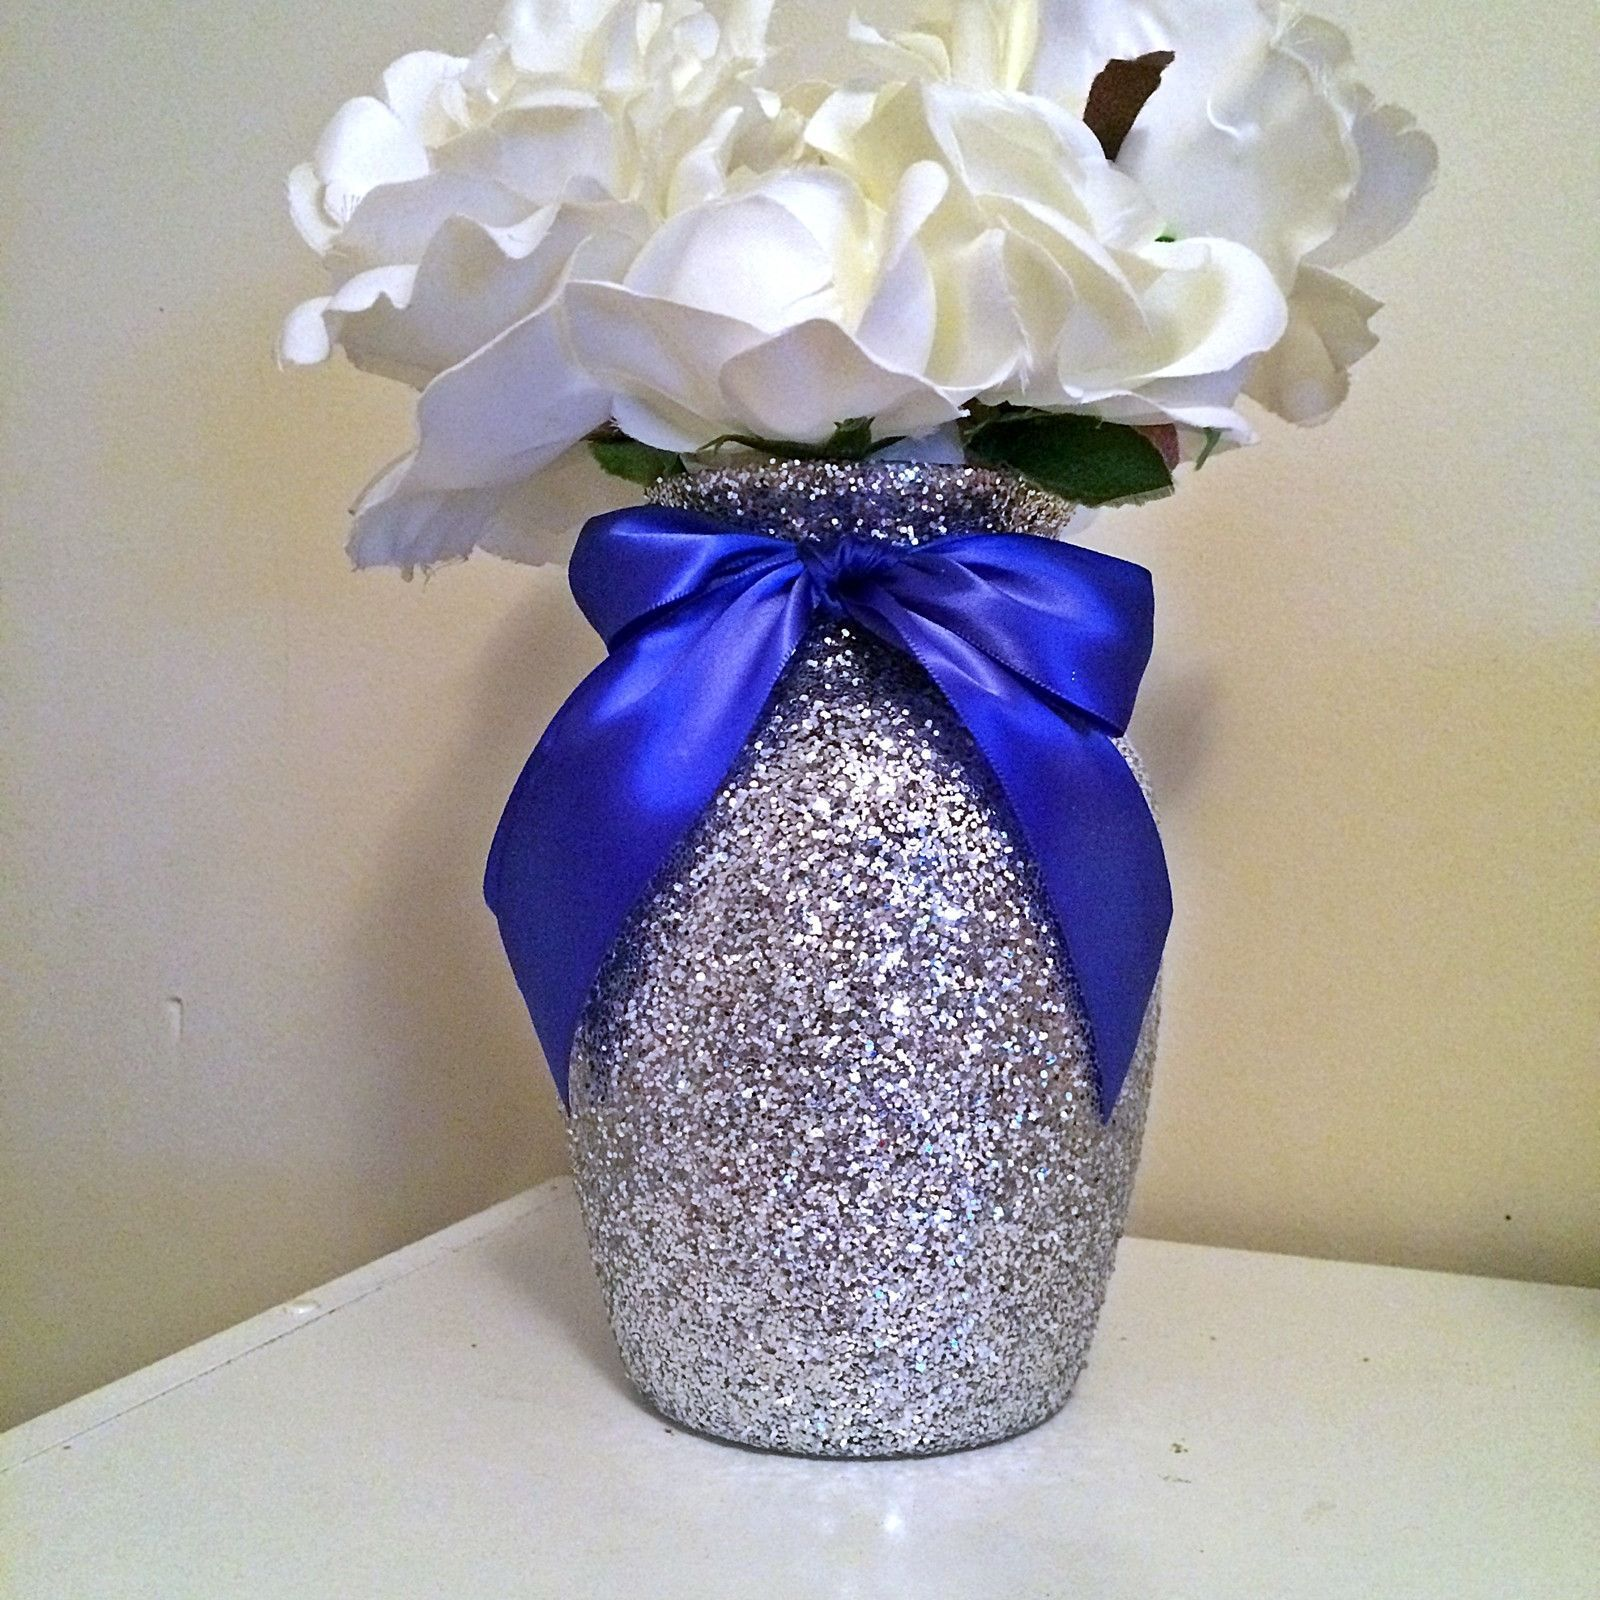 Silver and royal blue vases for baby shower bridal shower birthday silver and royal blue vases for baby shower bridal shower birthday wedding centerpiece reviewsmspy